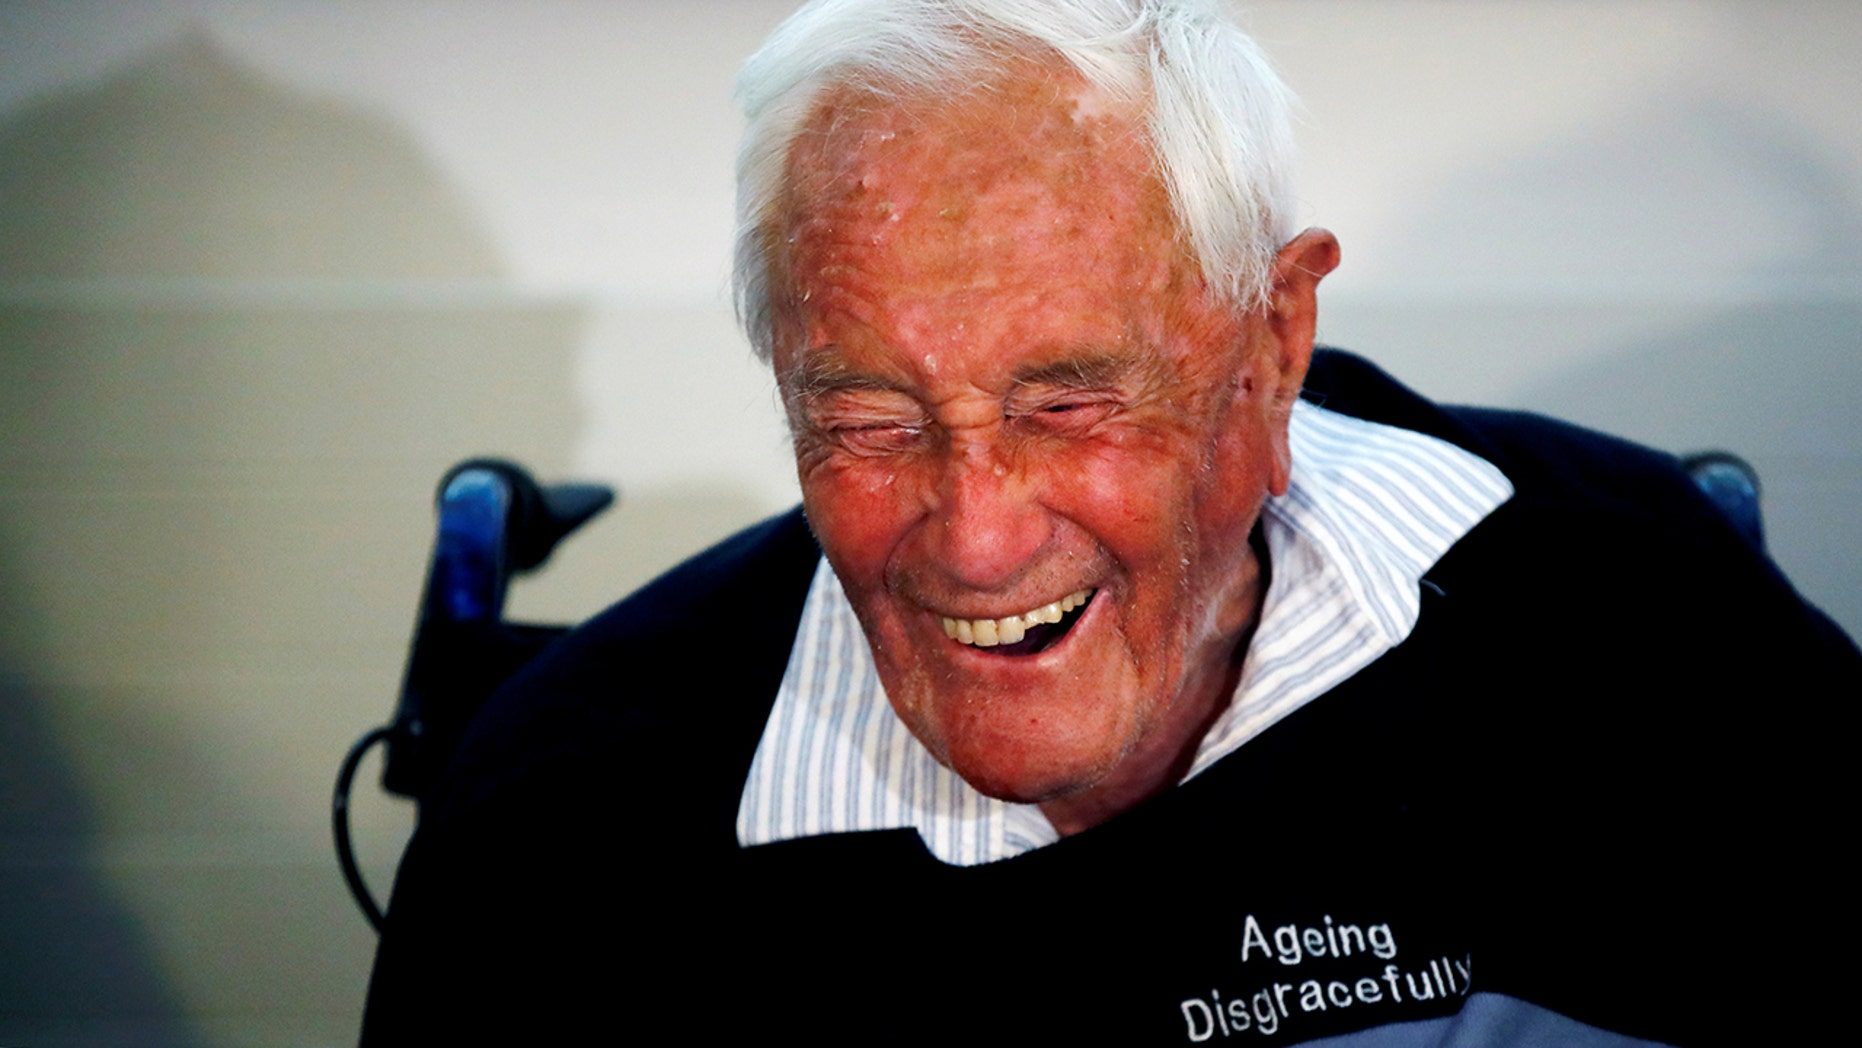 David Goodall, 104, spoke at a news conference a day before he took his own life in assisted suicide, in Basel, Switzerland.